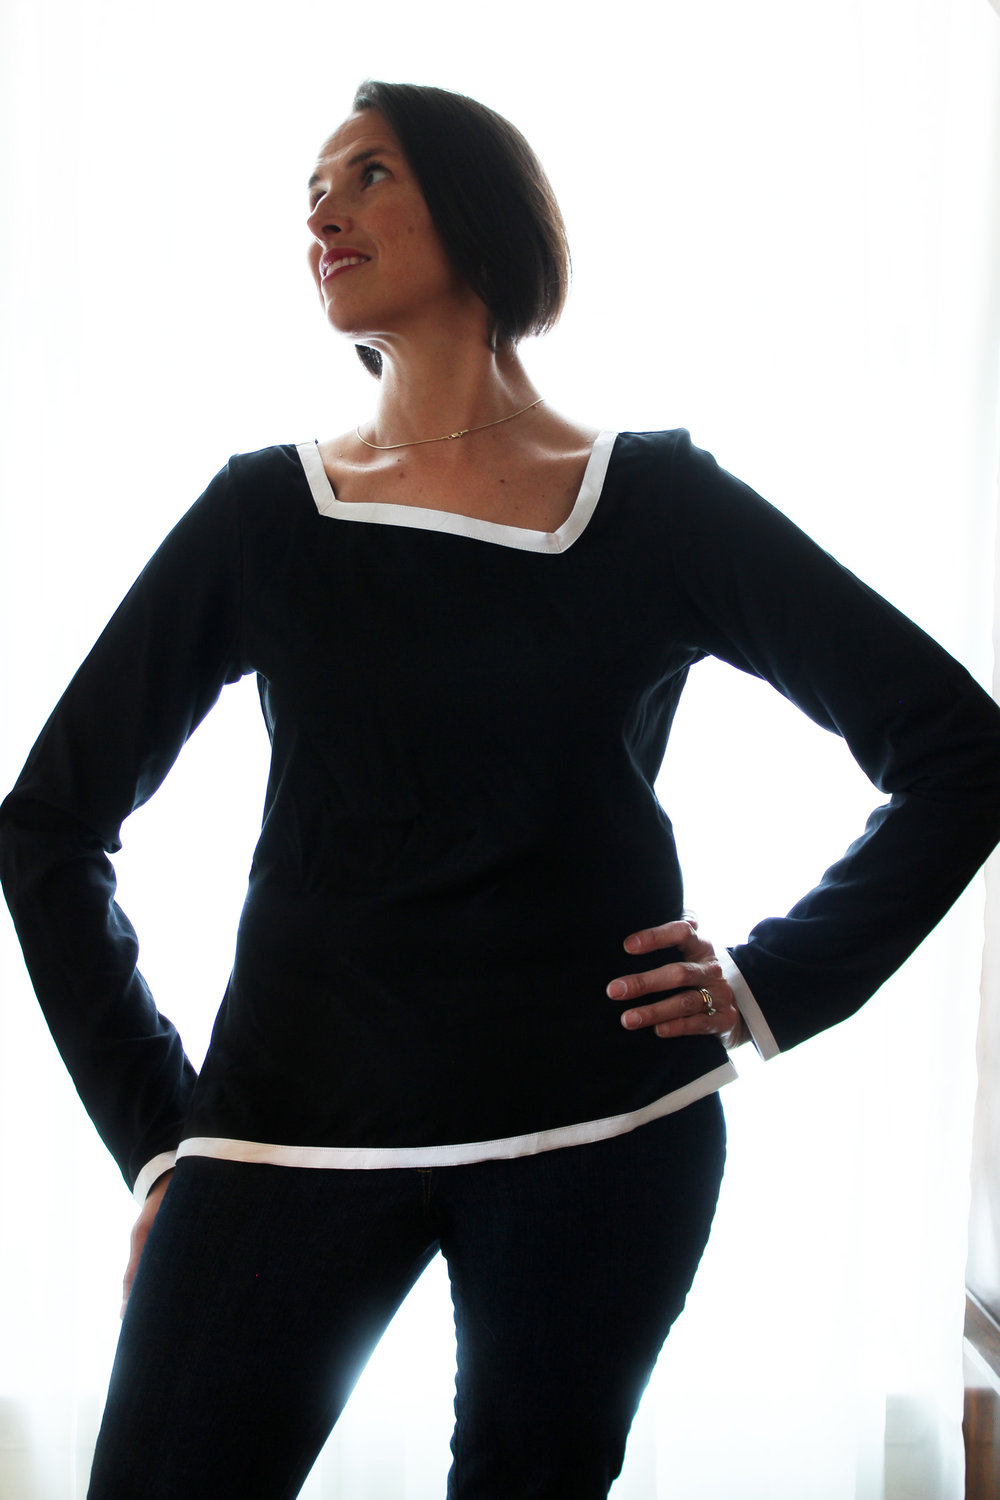 JB_Basic Black book review_asymmetrical blouse_looking aside.jpg